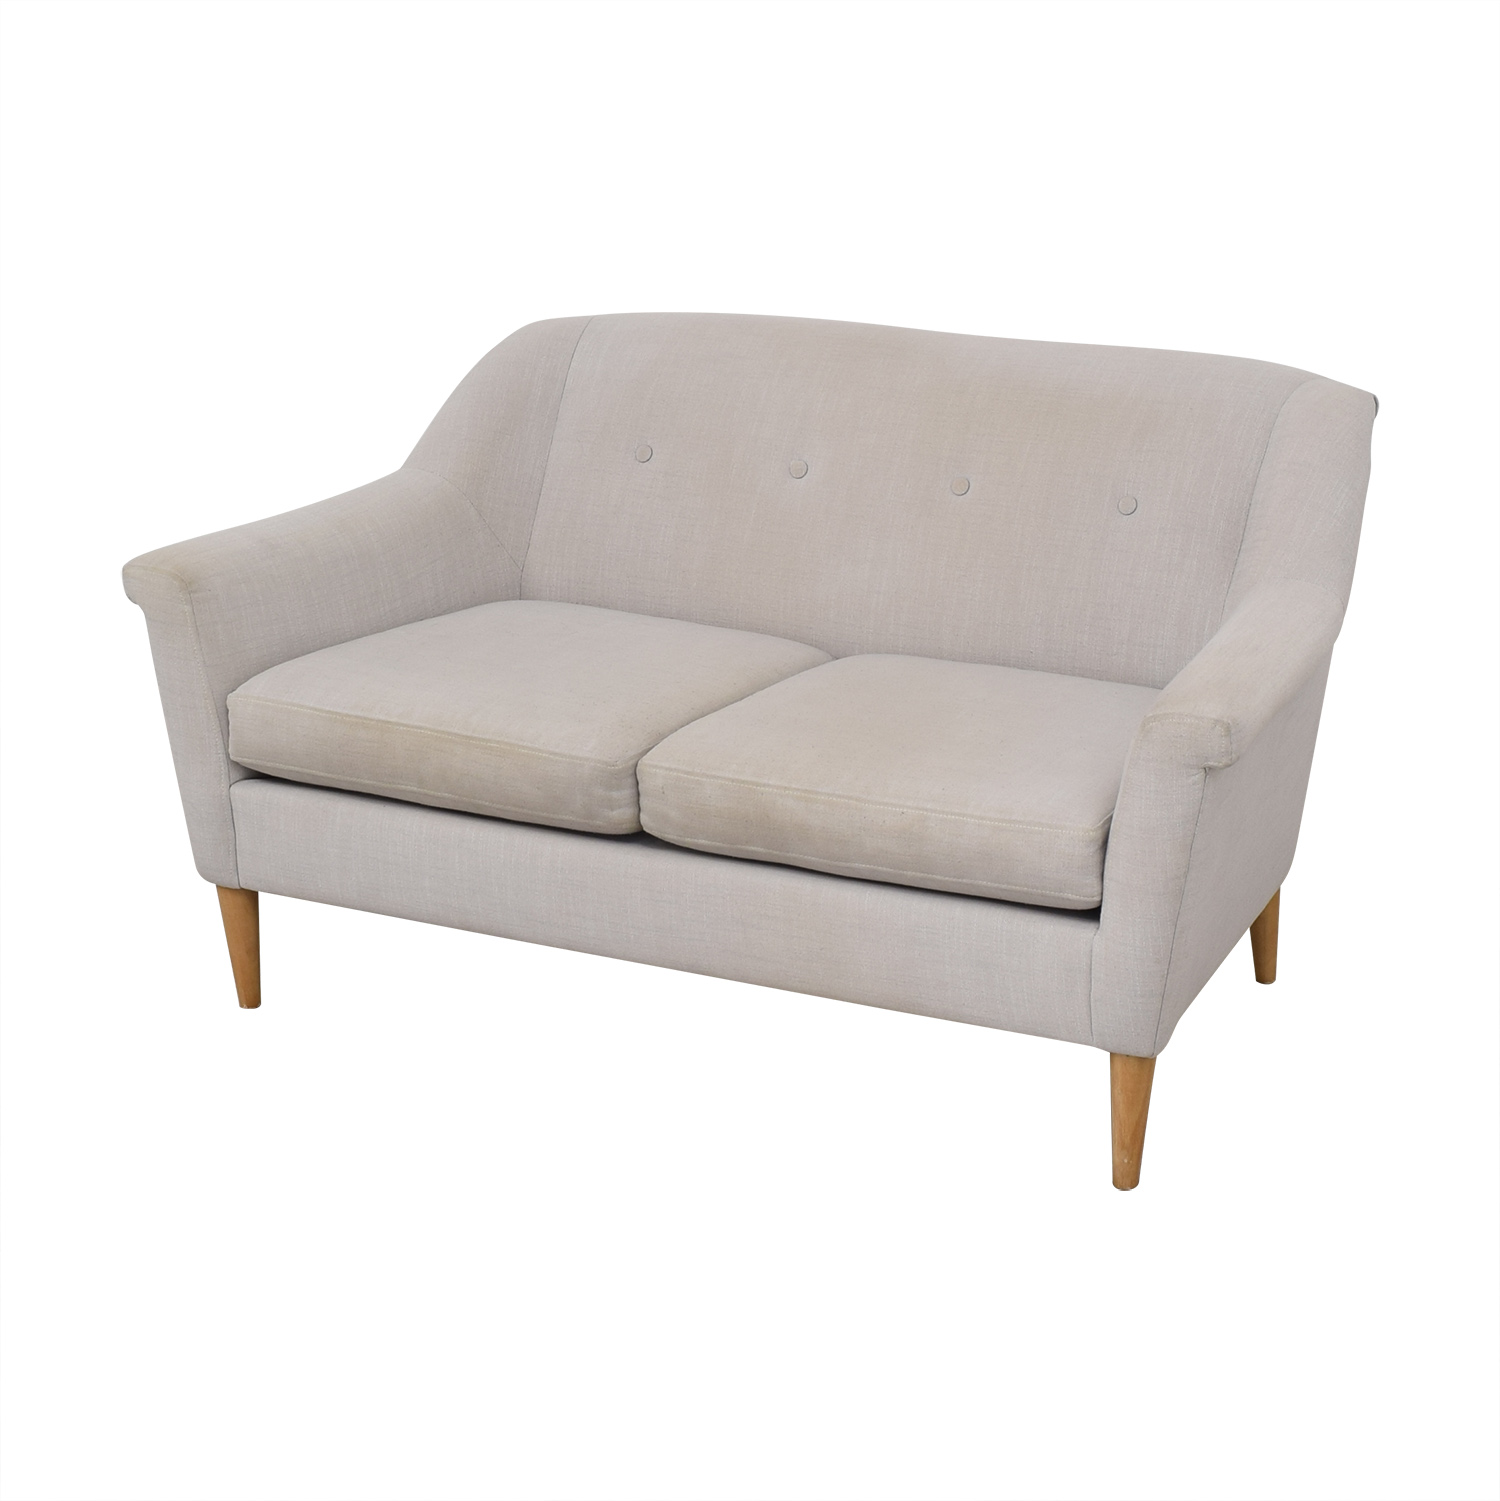 shop West Elm West Elm Finn Loveseat online